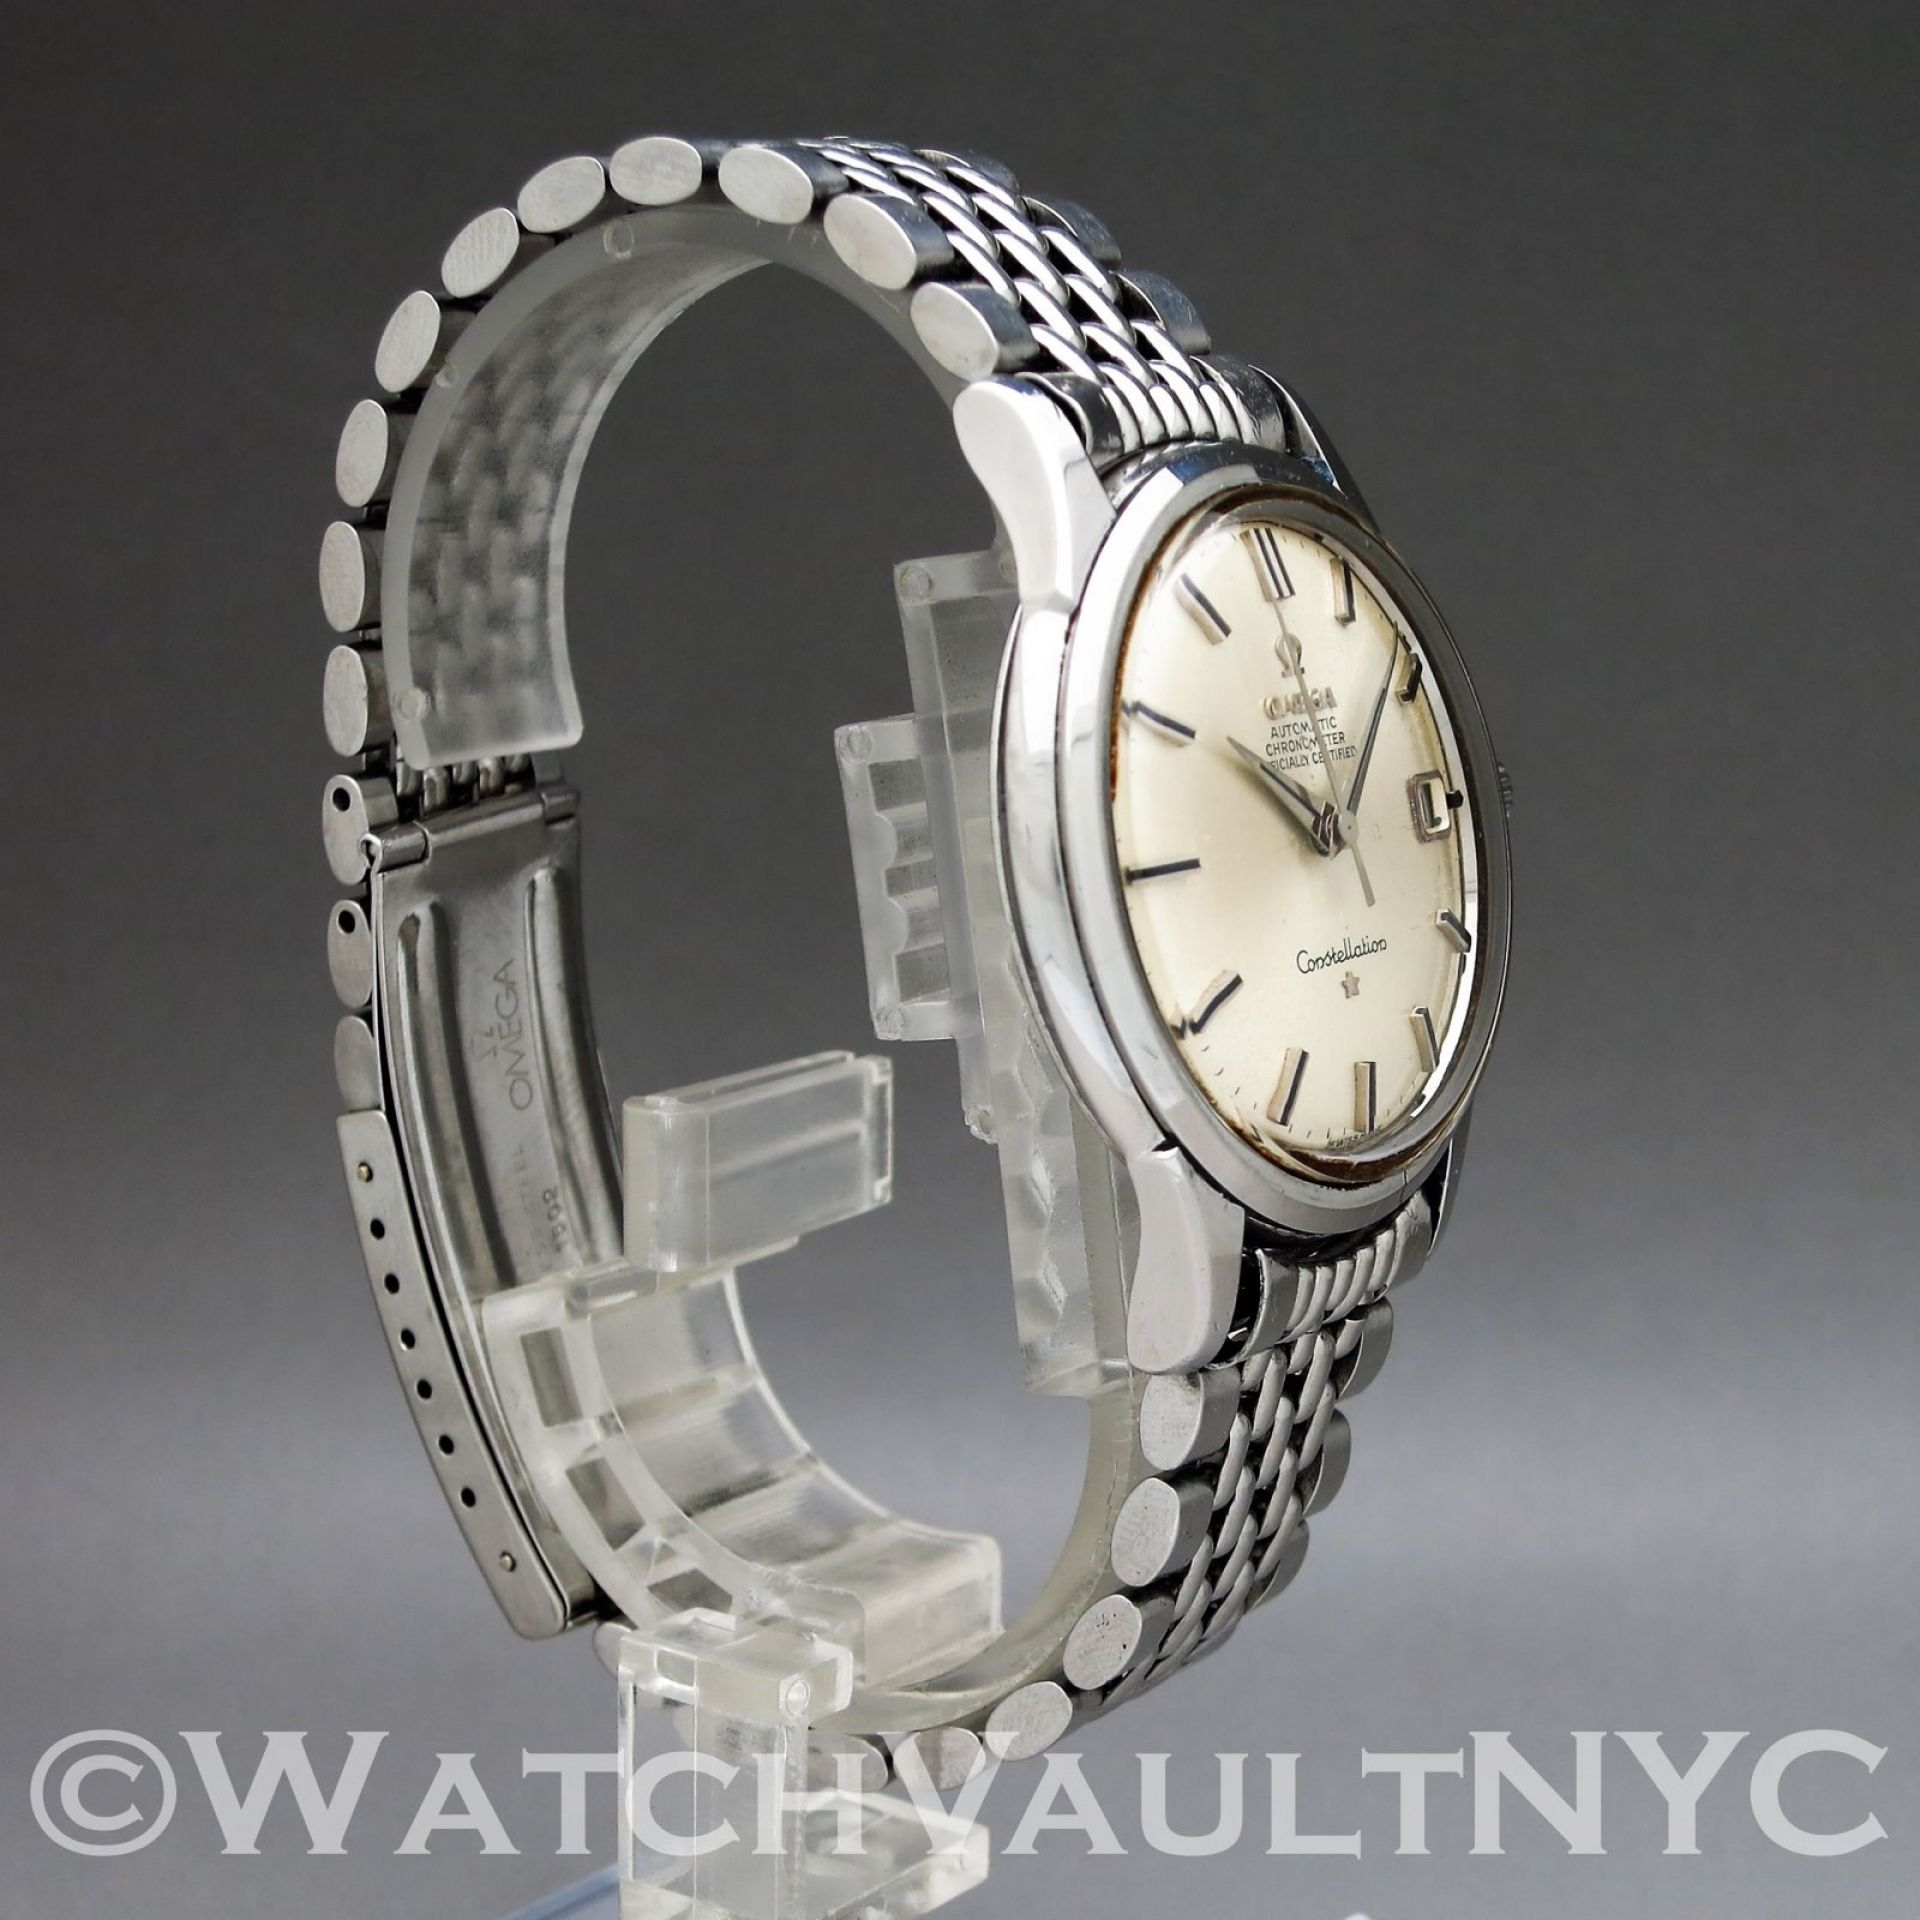 Omega Constellation 168.001 Jumbo 1963 Vintage 37mm Auto RI212